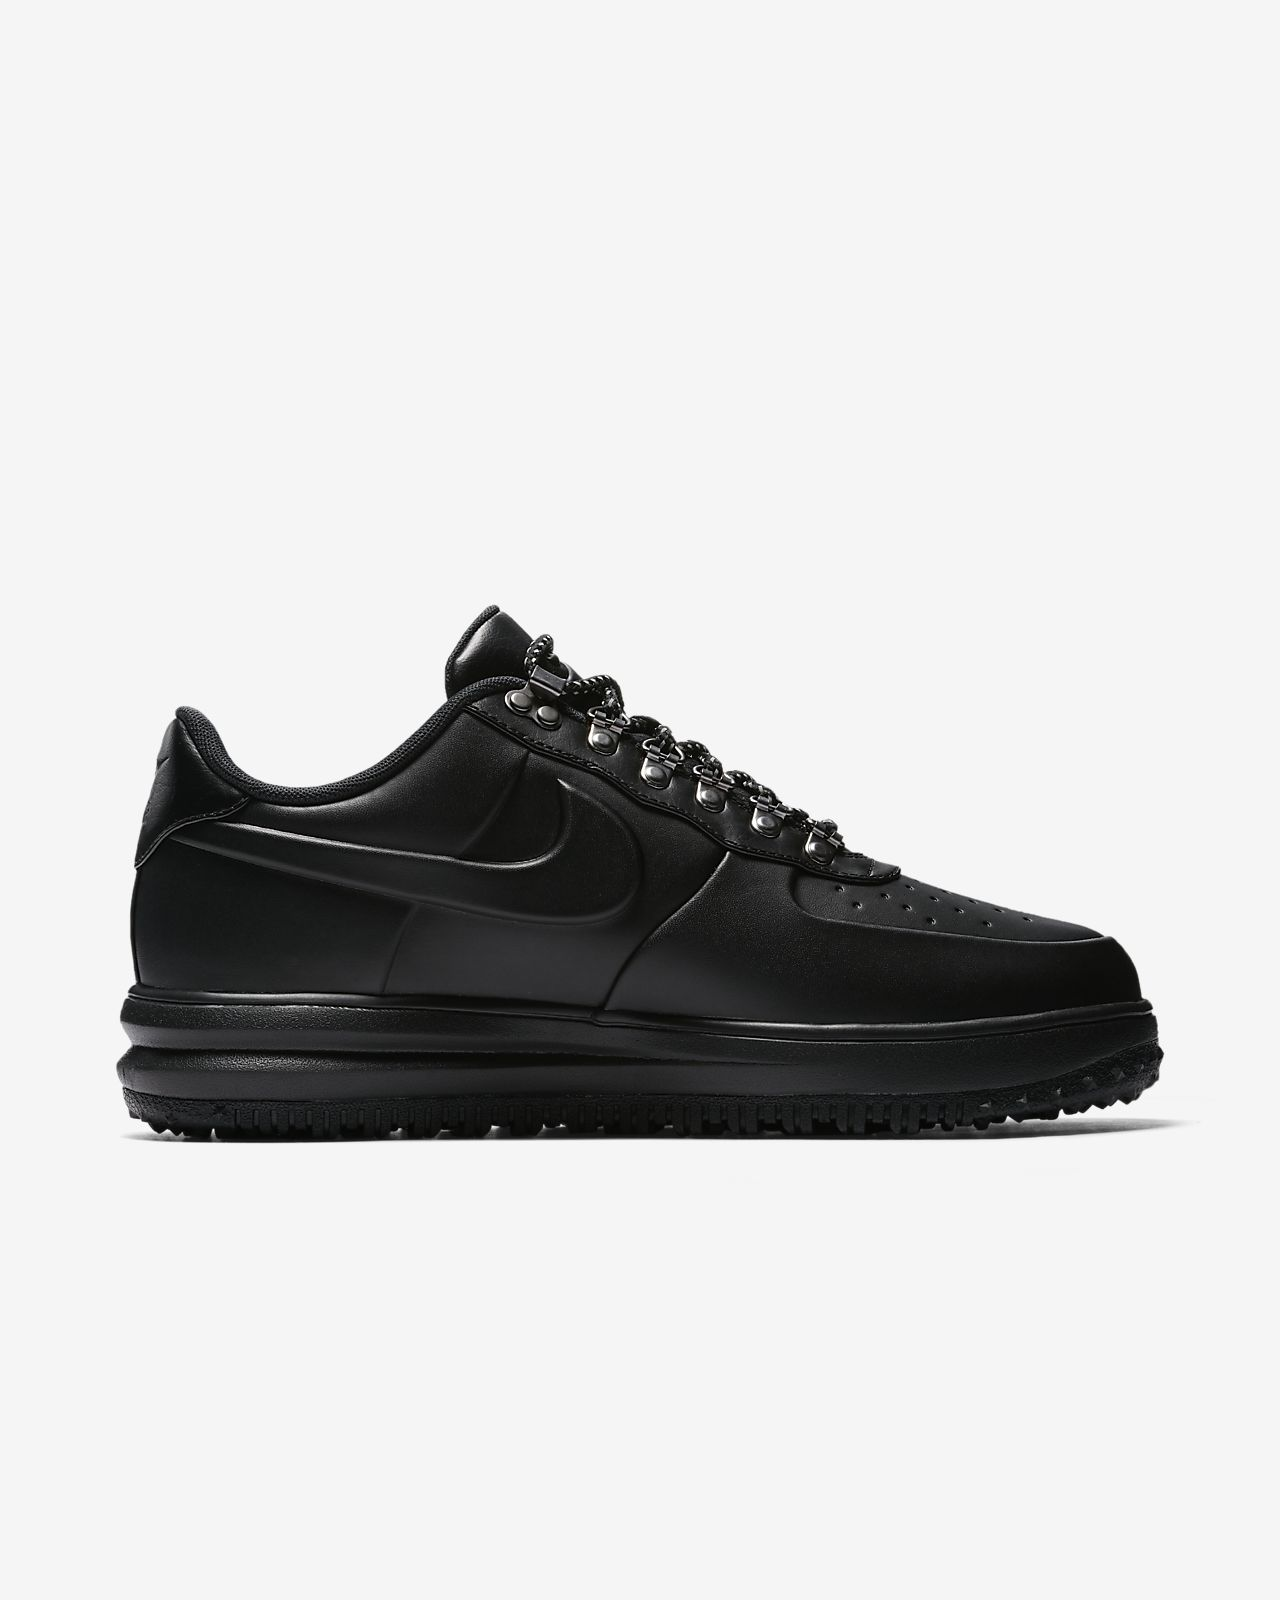 Nike Lunar Force 1 Duckboot Low Men s Shoe